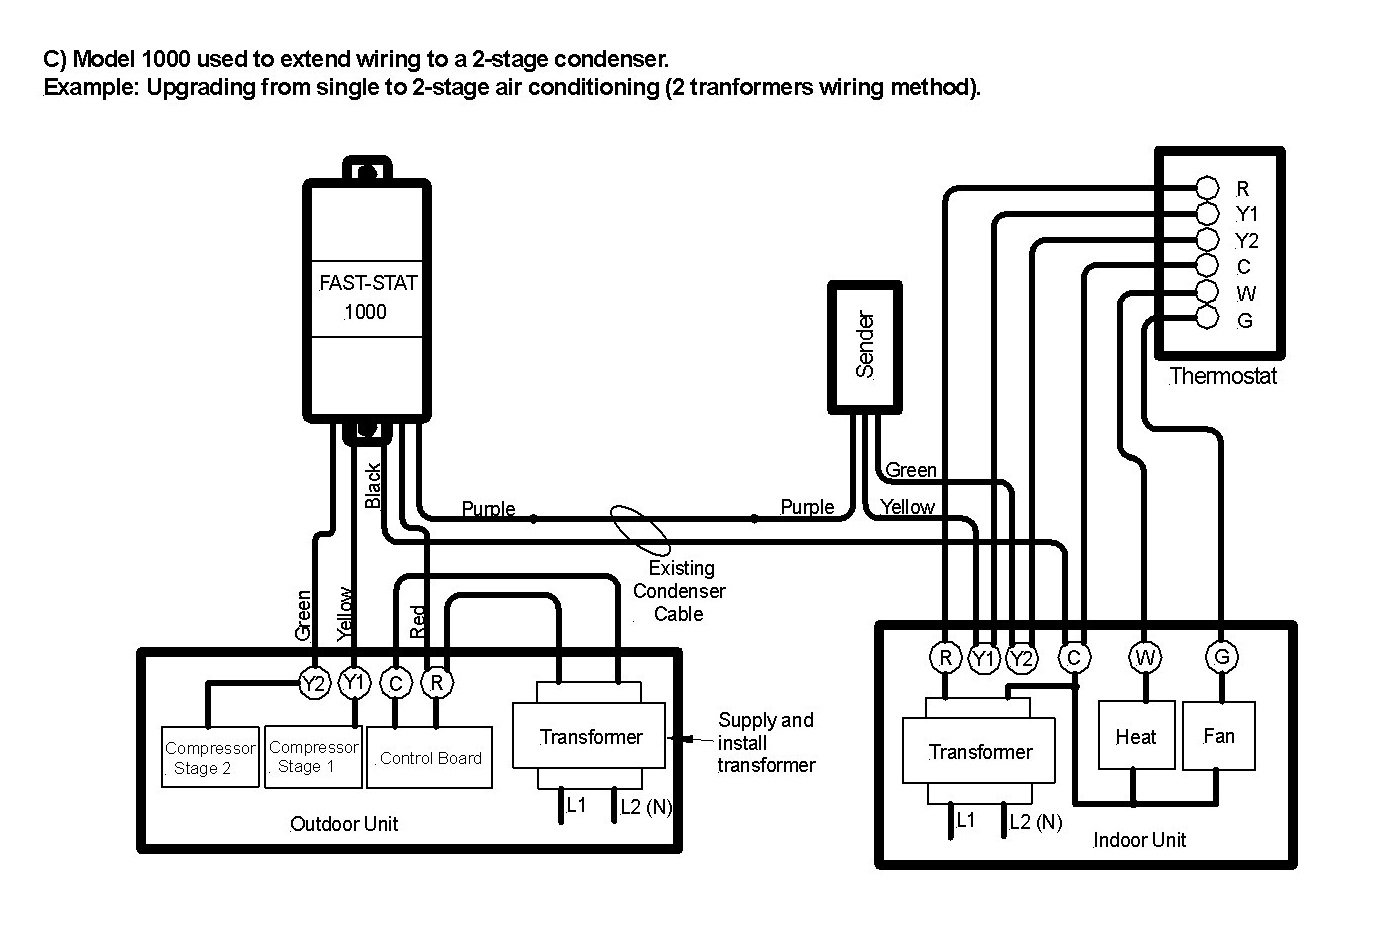 How To Read A Wiring Diagram Hvac in addition Icp Air Conditioner Wiring Diagram additionally Trane Heat Pump Package Unit Thermostat Wiring Diagram in addition Old Lennox Wiring Diagram besides Blower Door Interlock Switch. on trane rooftop ac wiring diagrams